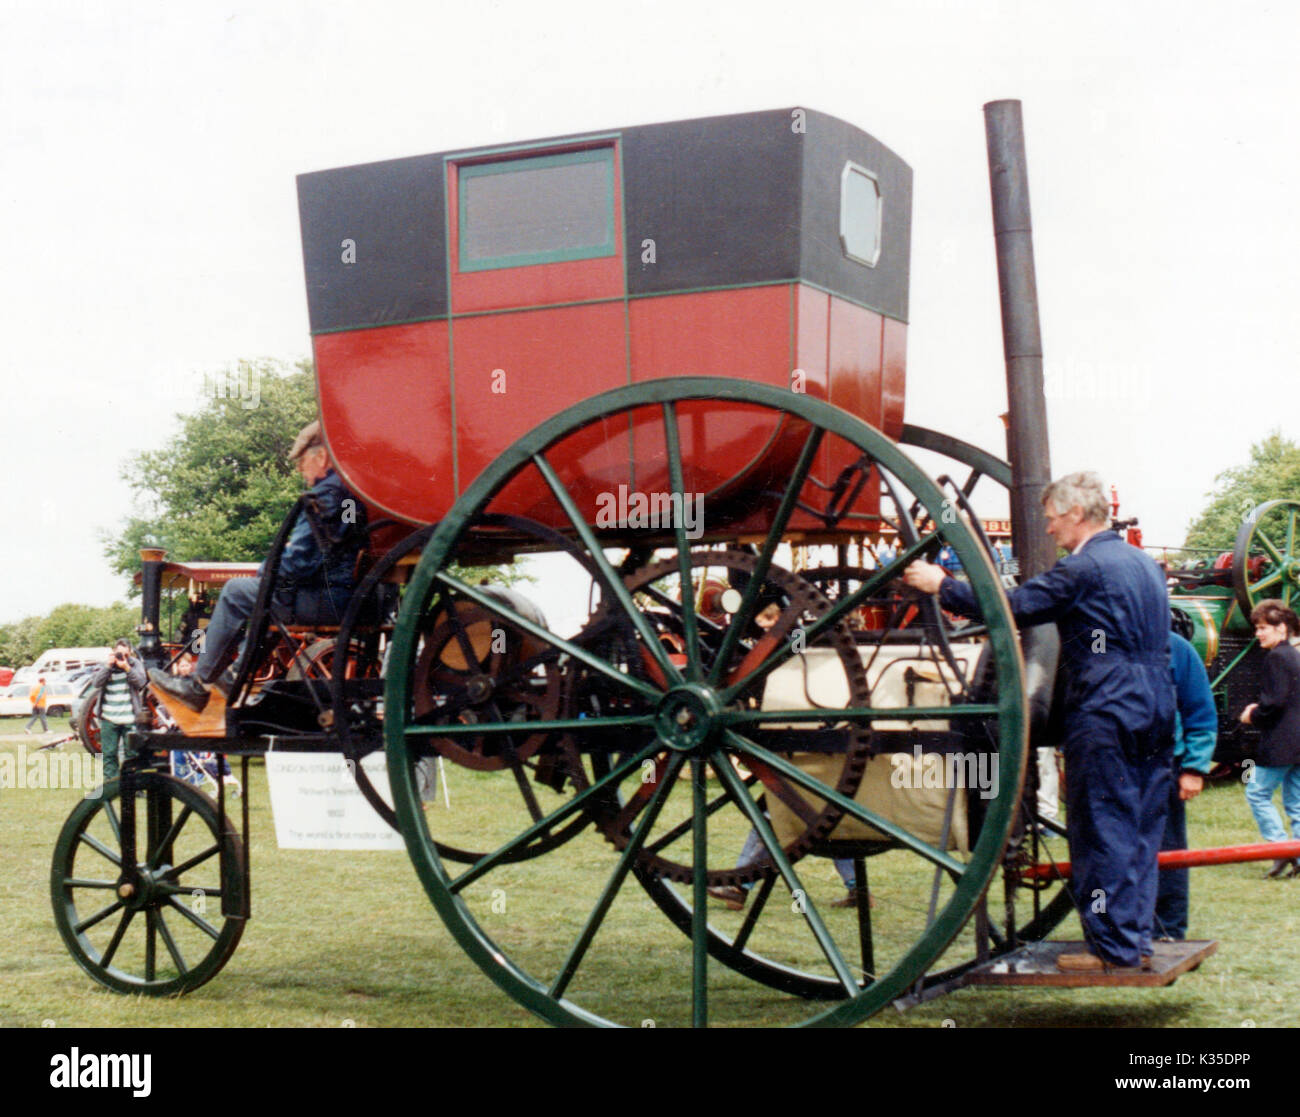 1803 Trevithick steam carriage replica - Stock Image